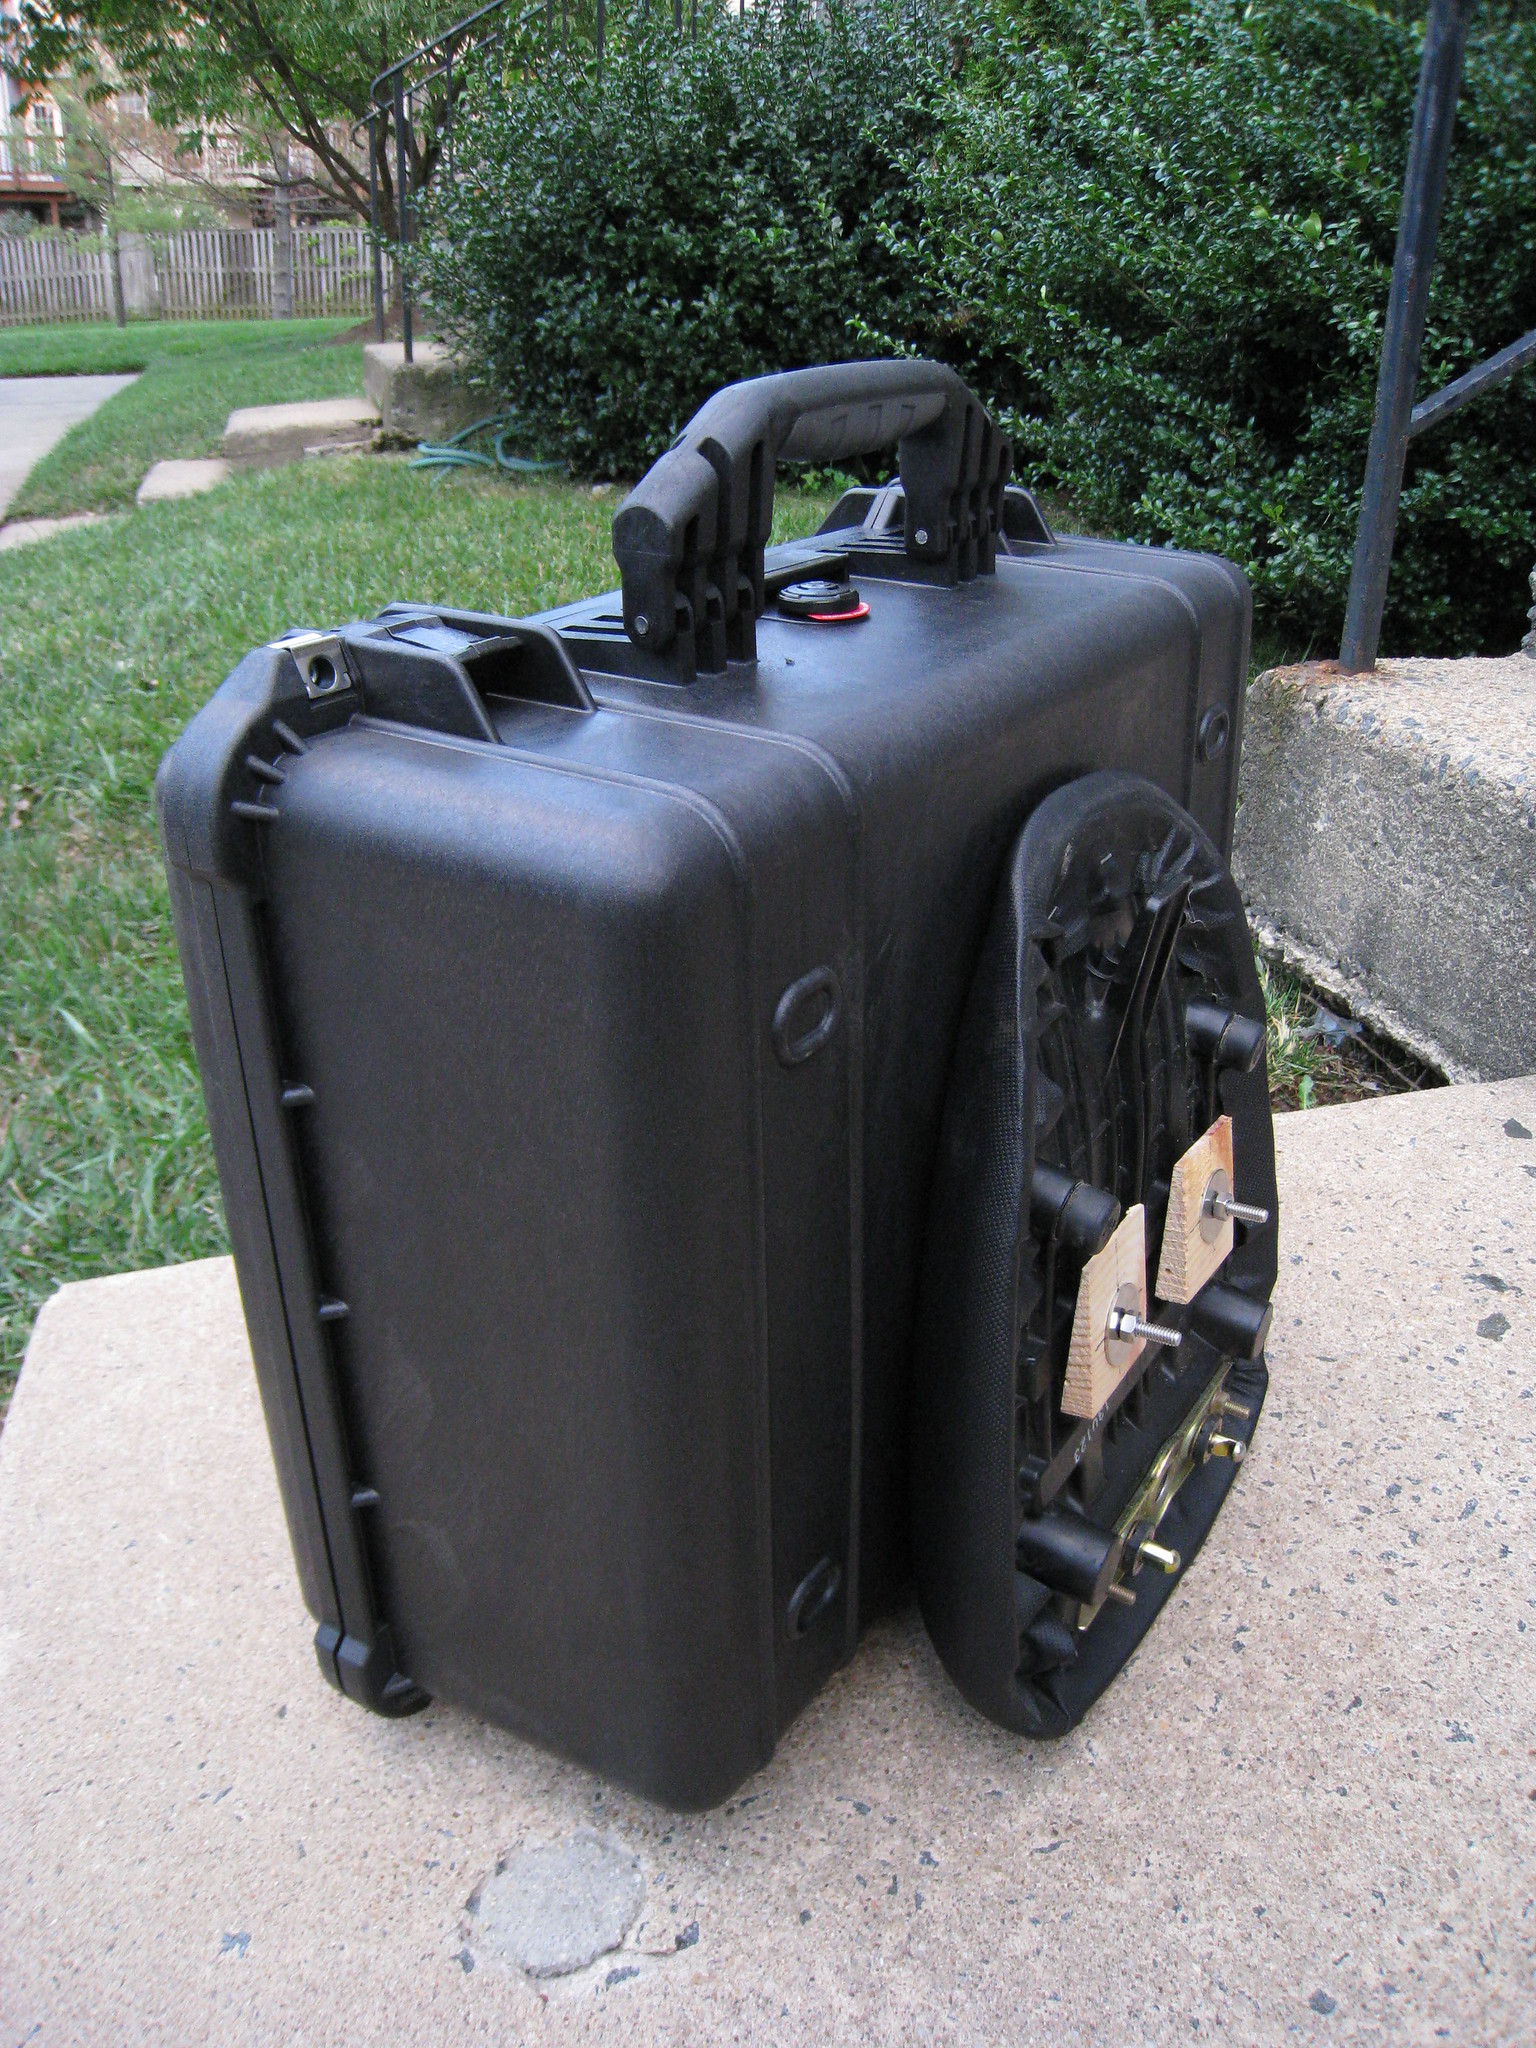 Pelican Case mounted to a passenger seat